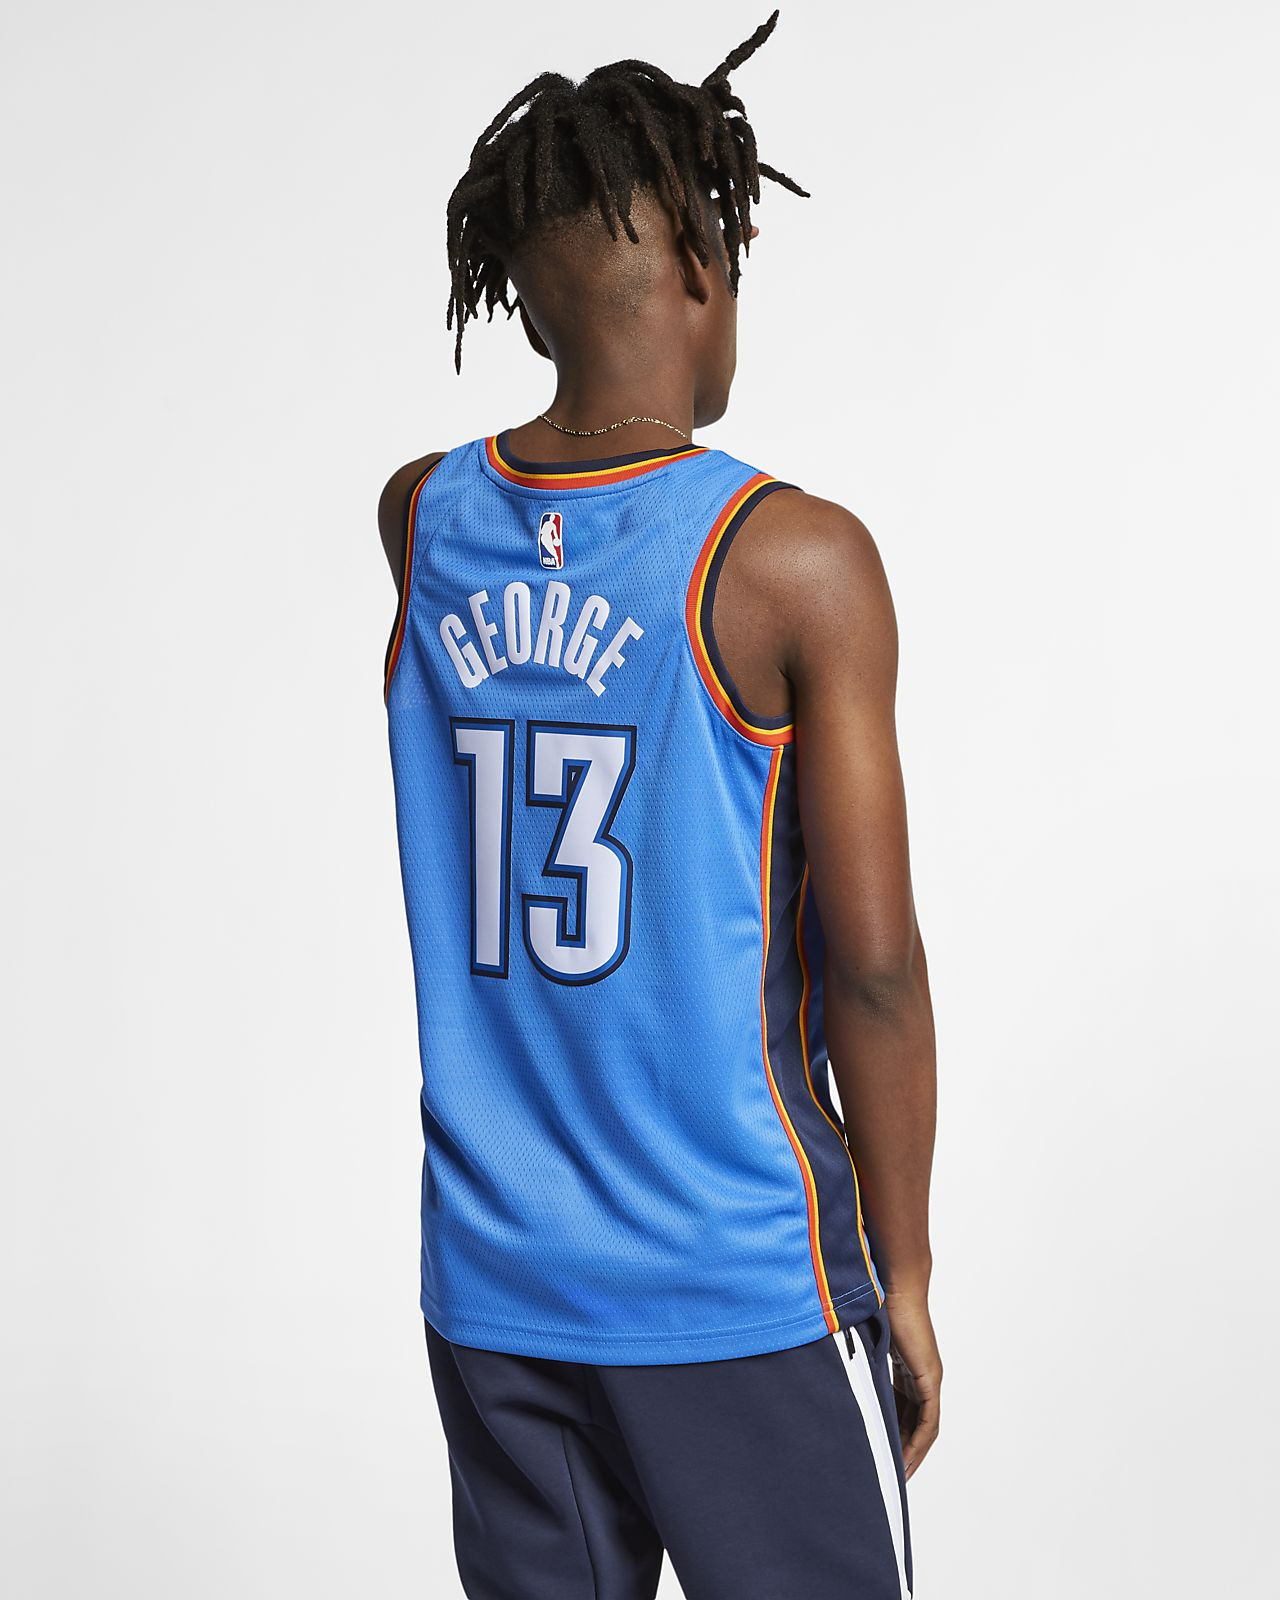 a733783dc655 Men s Nike NBA Connected Jersey. Paul George Icon Edition Swingman (Oklahoma  City Thunder)